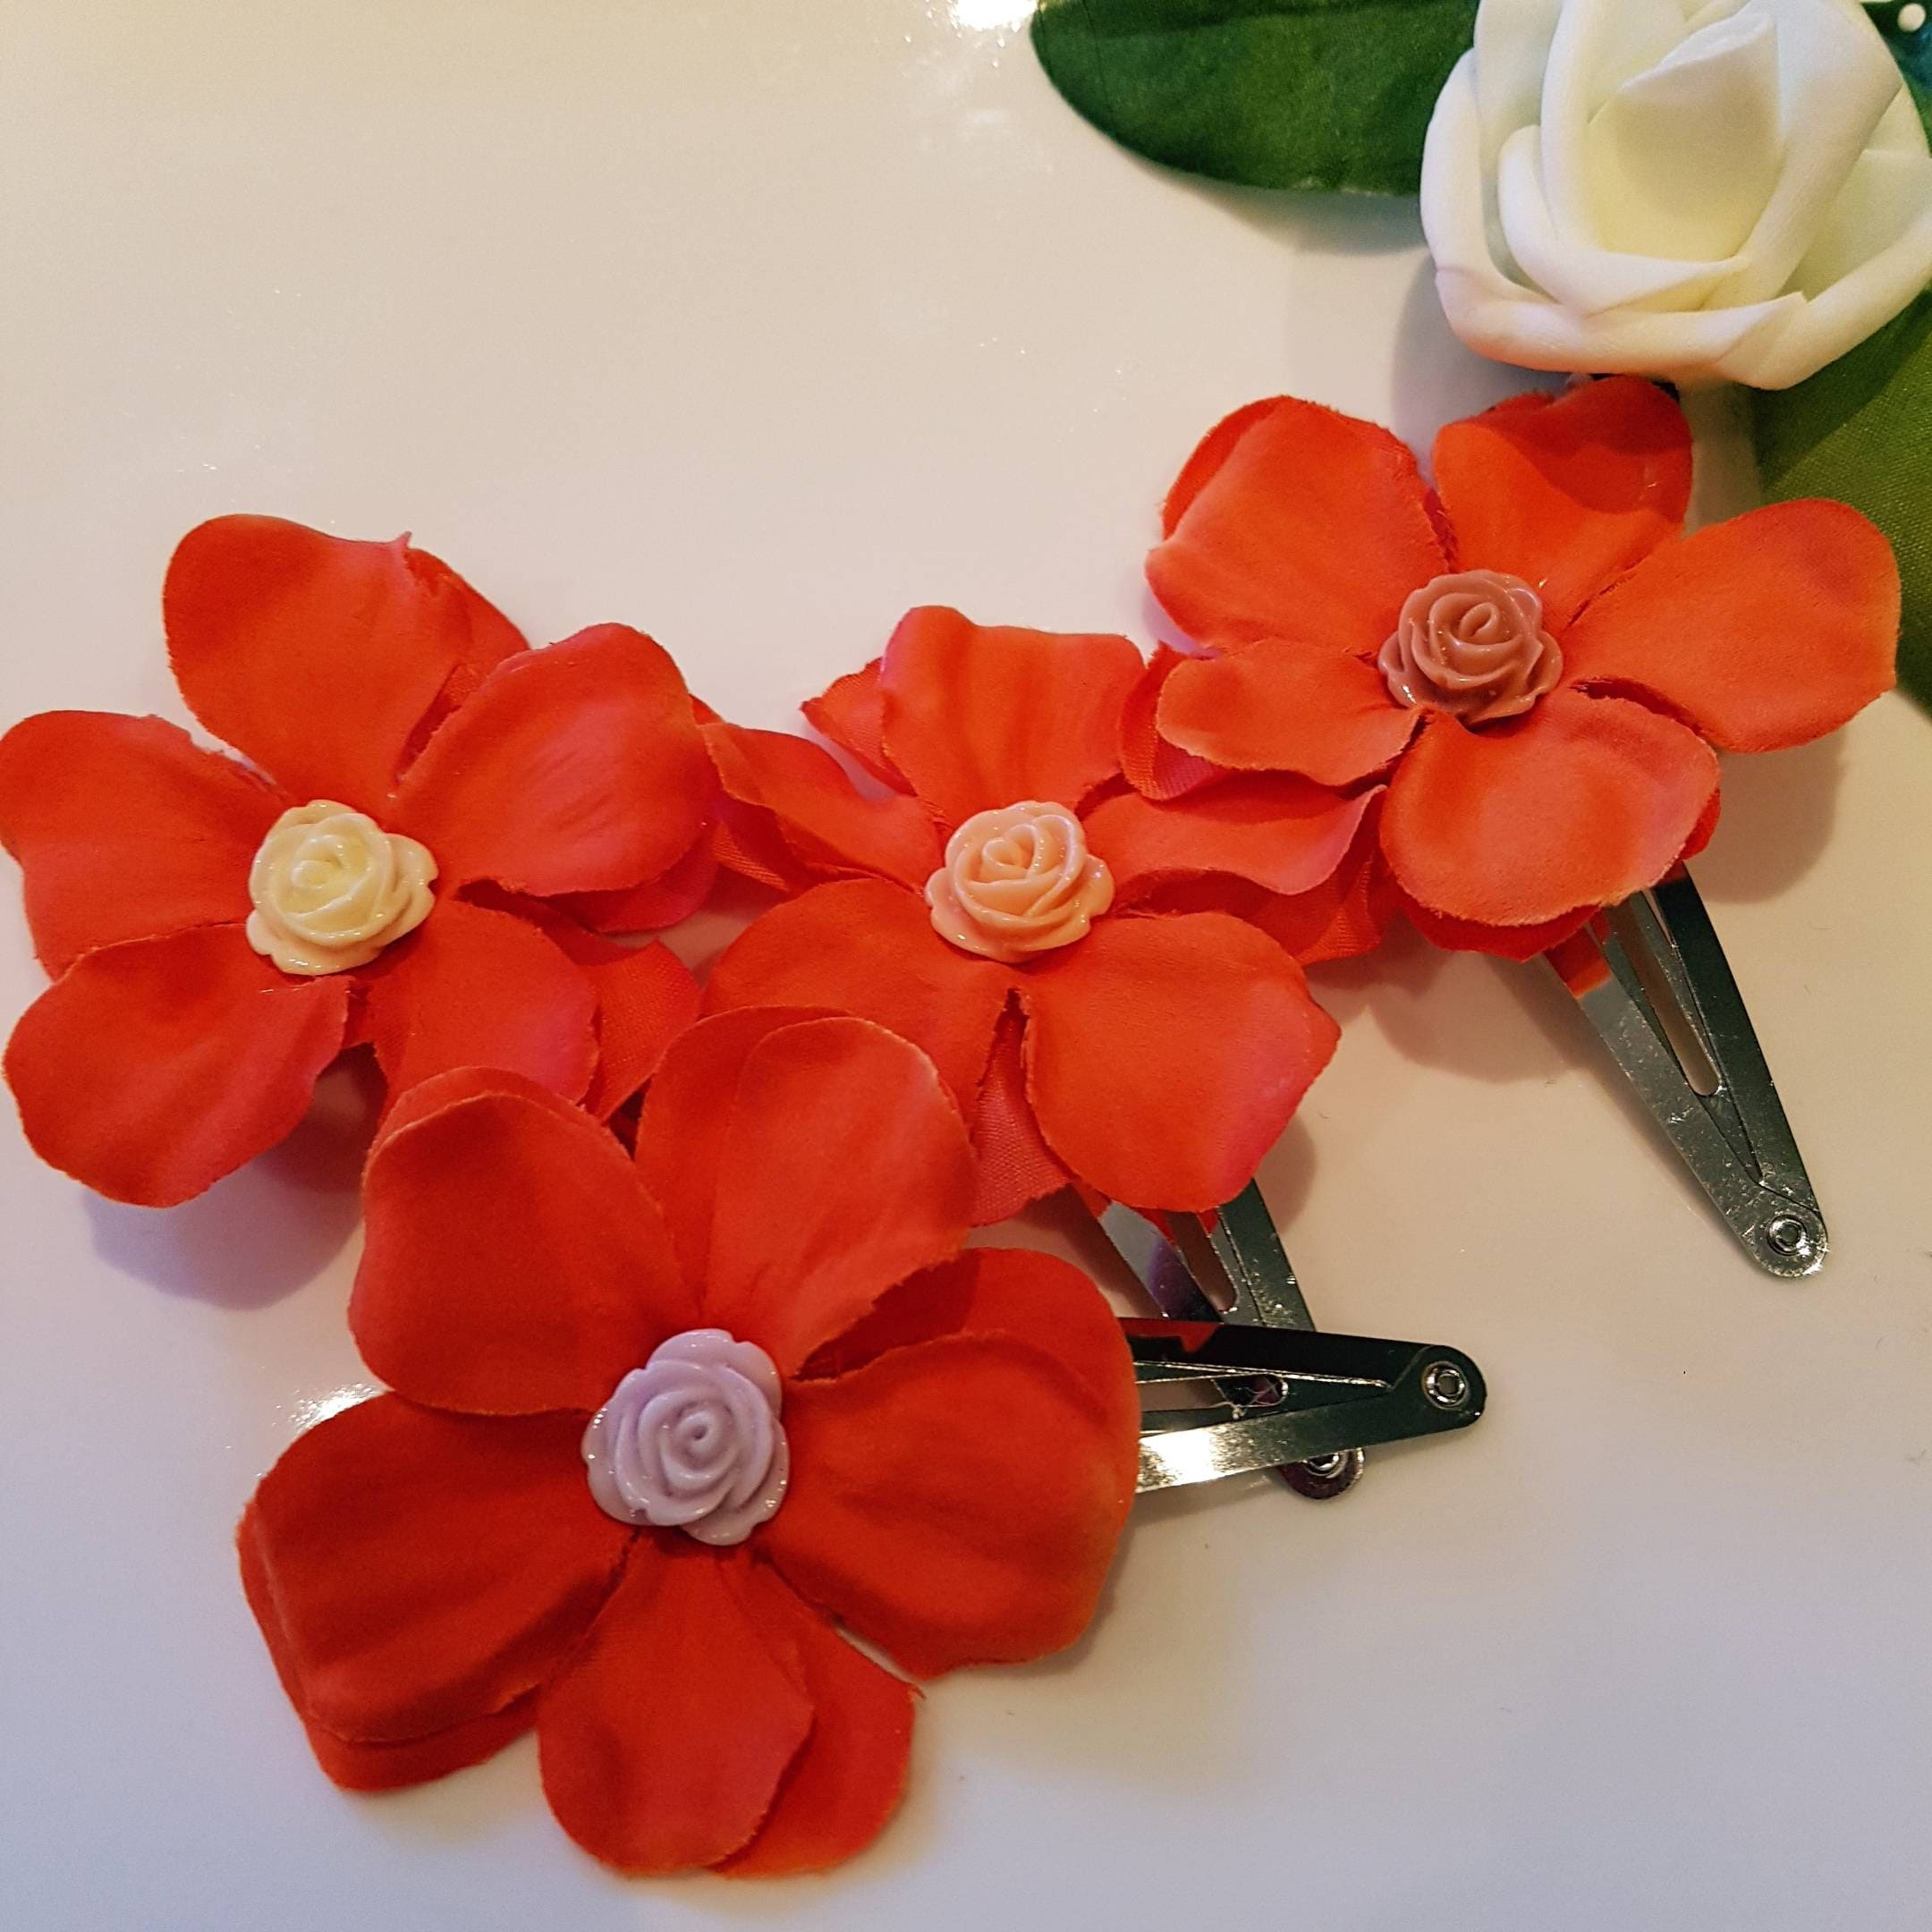 Moana Inspired Snap Clip Hair Accessories For Girls Birthday Etsy